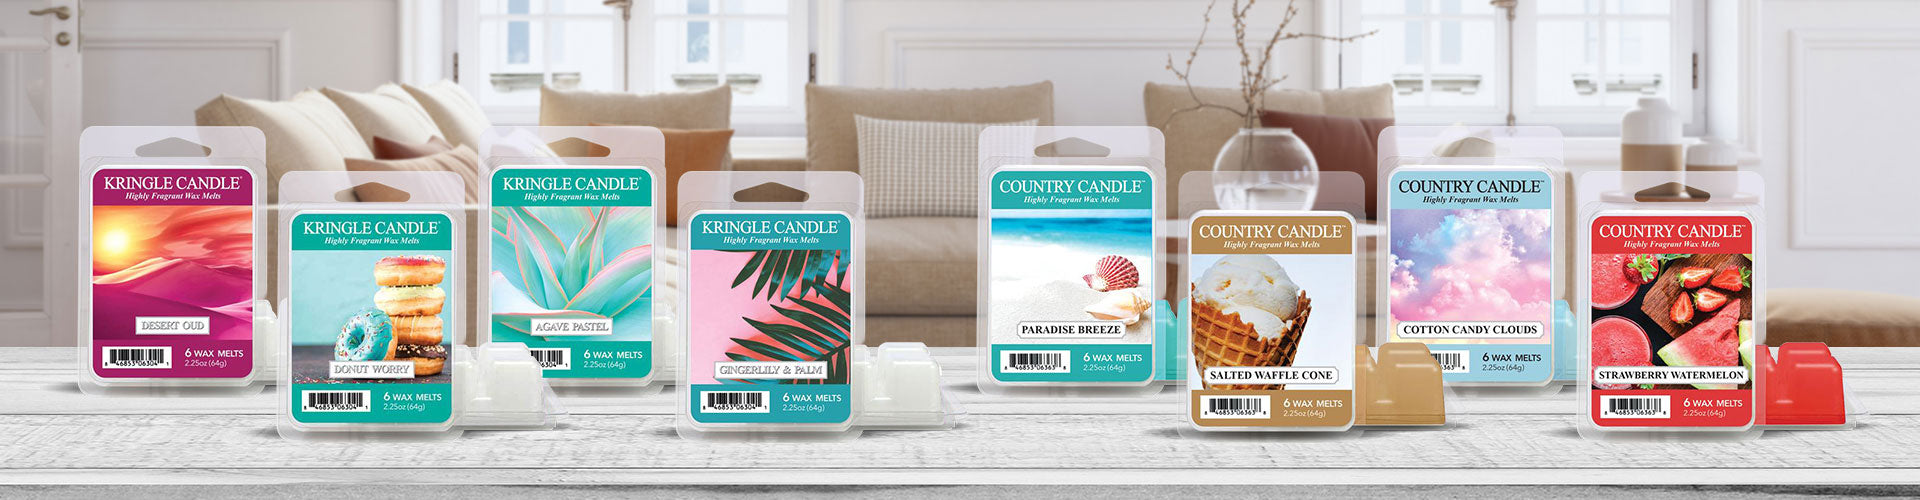 Graphic showing the Wax Melt Pack collection with a background of a brightly lit living room with a couch.